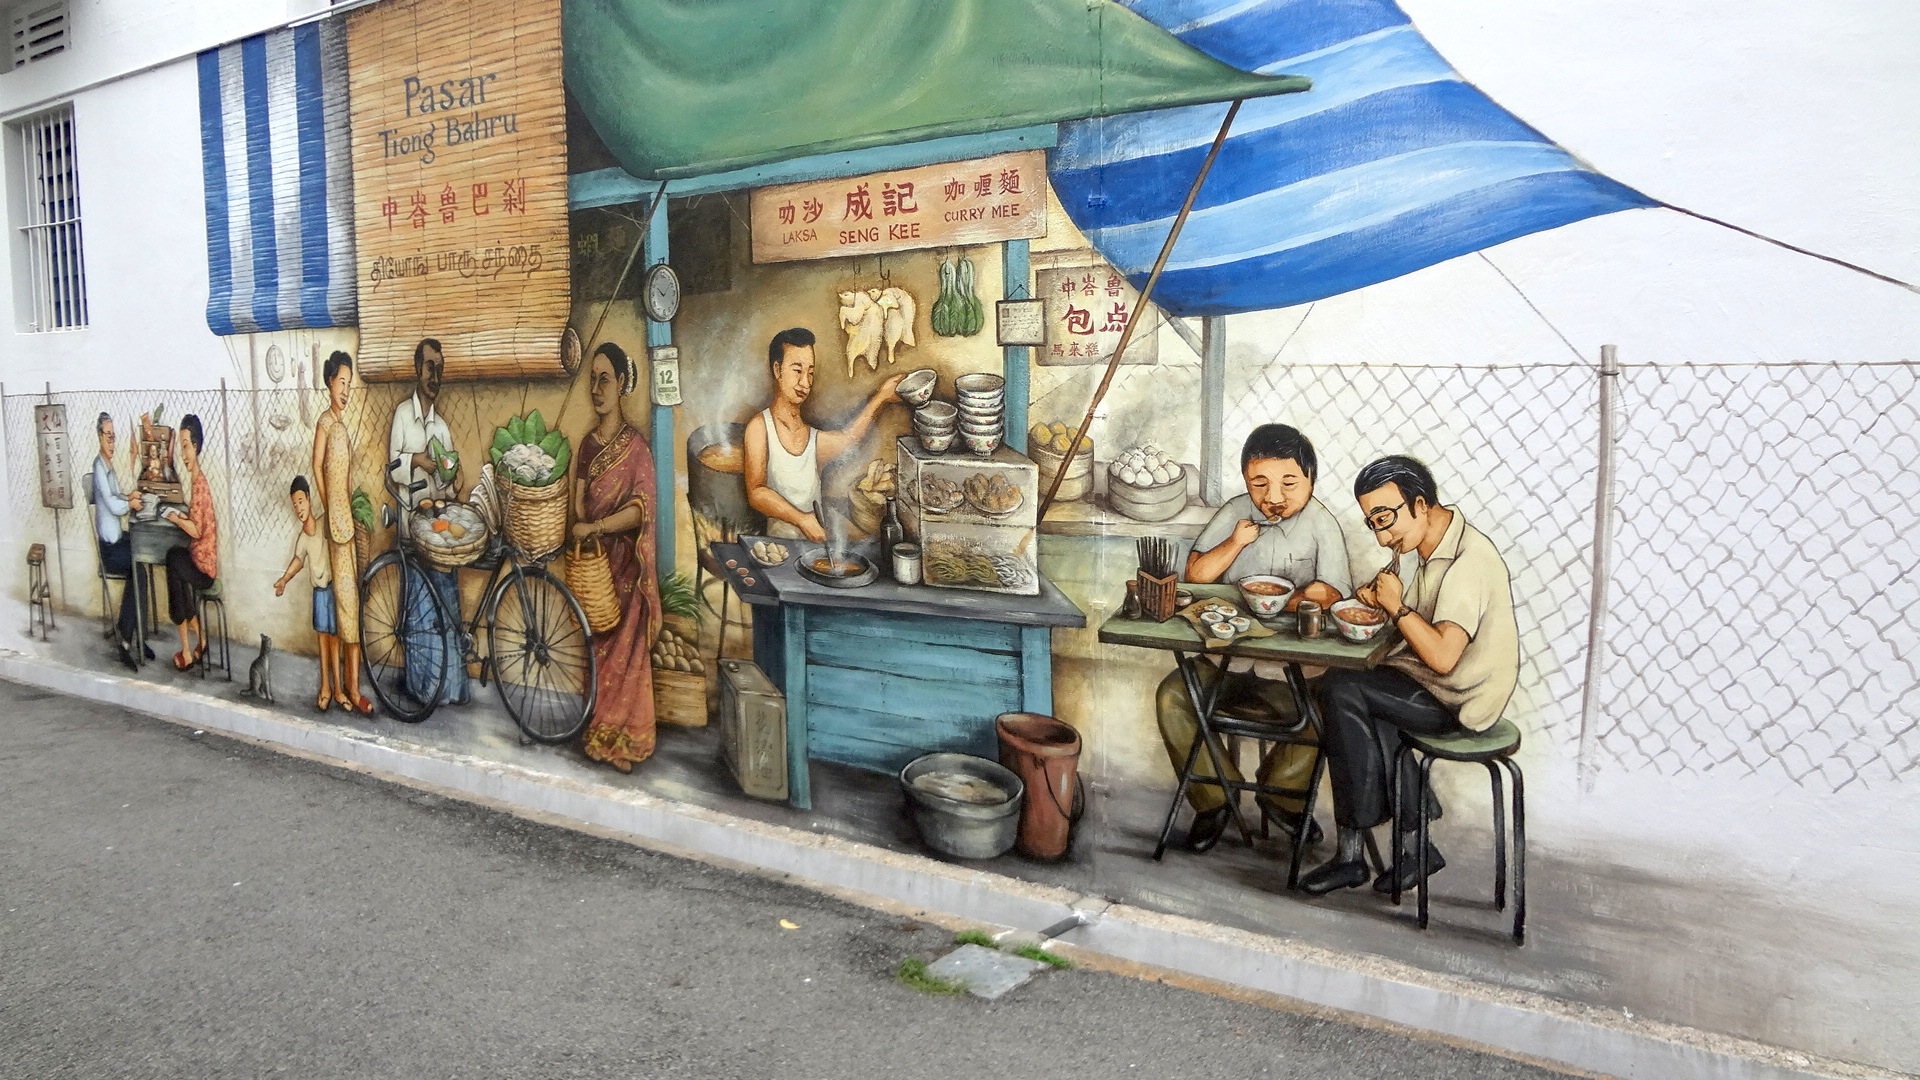 Graffiti art street mural of people shopping and eating.